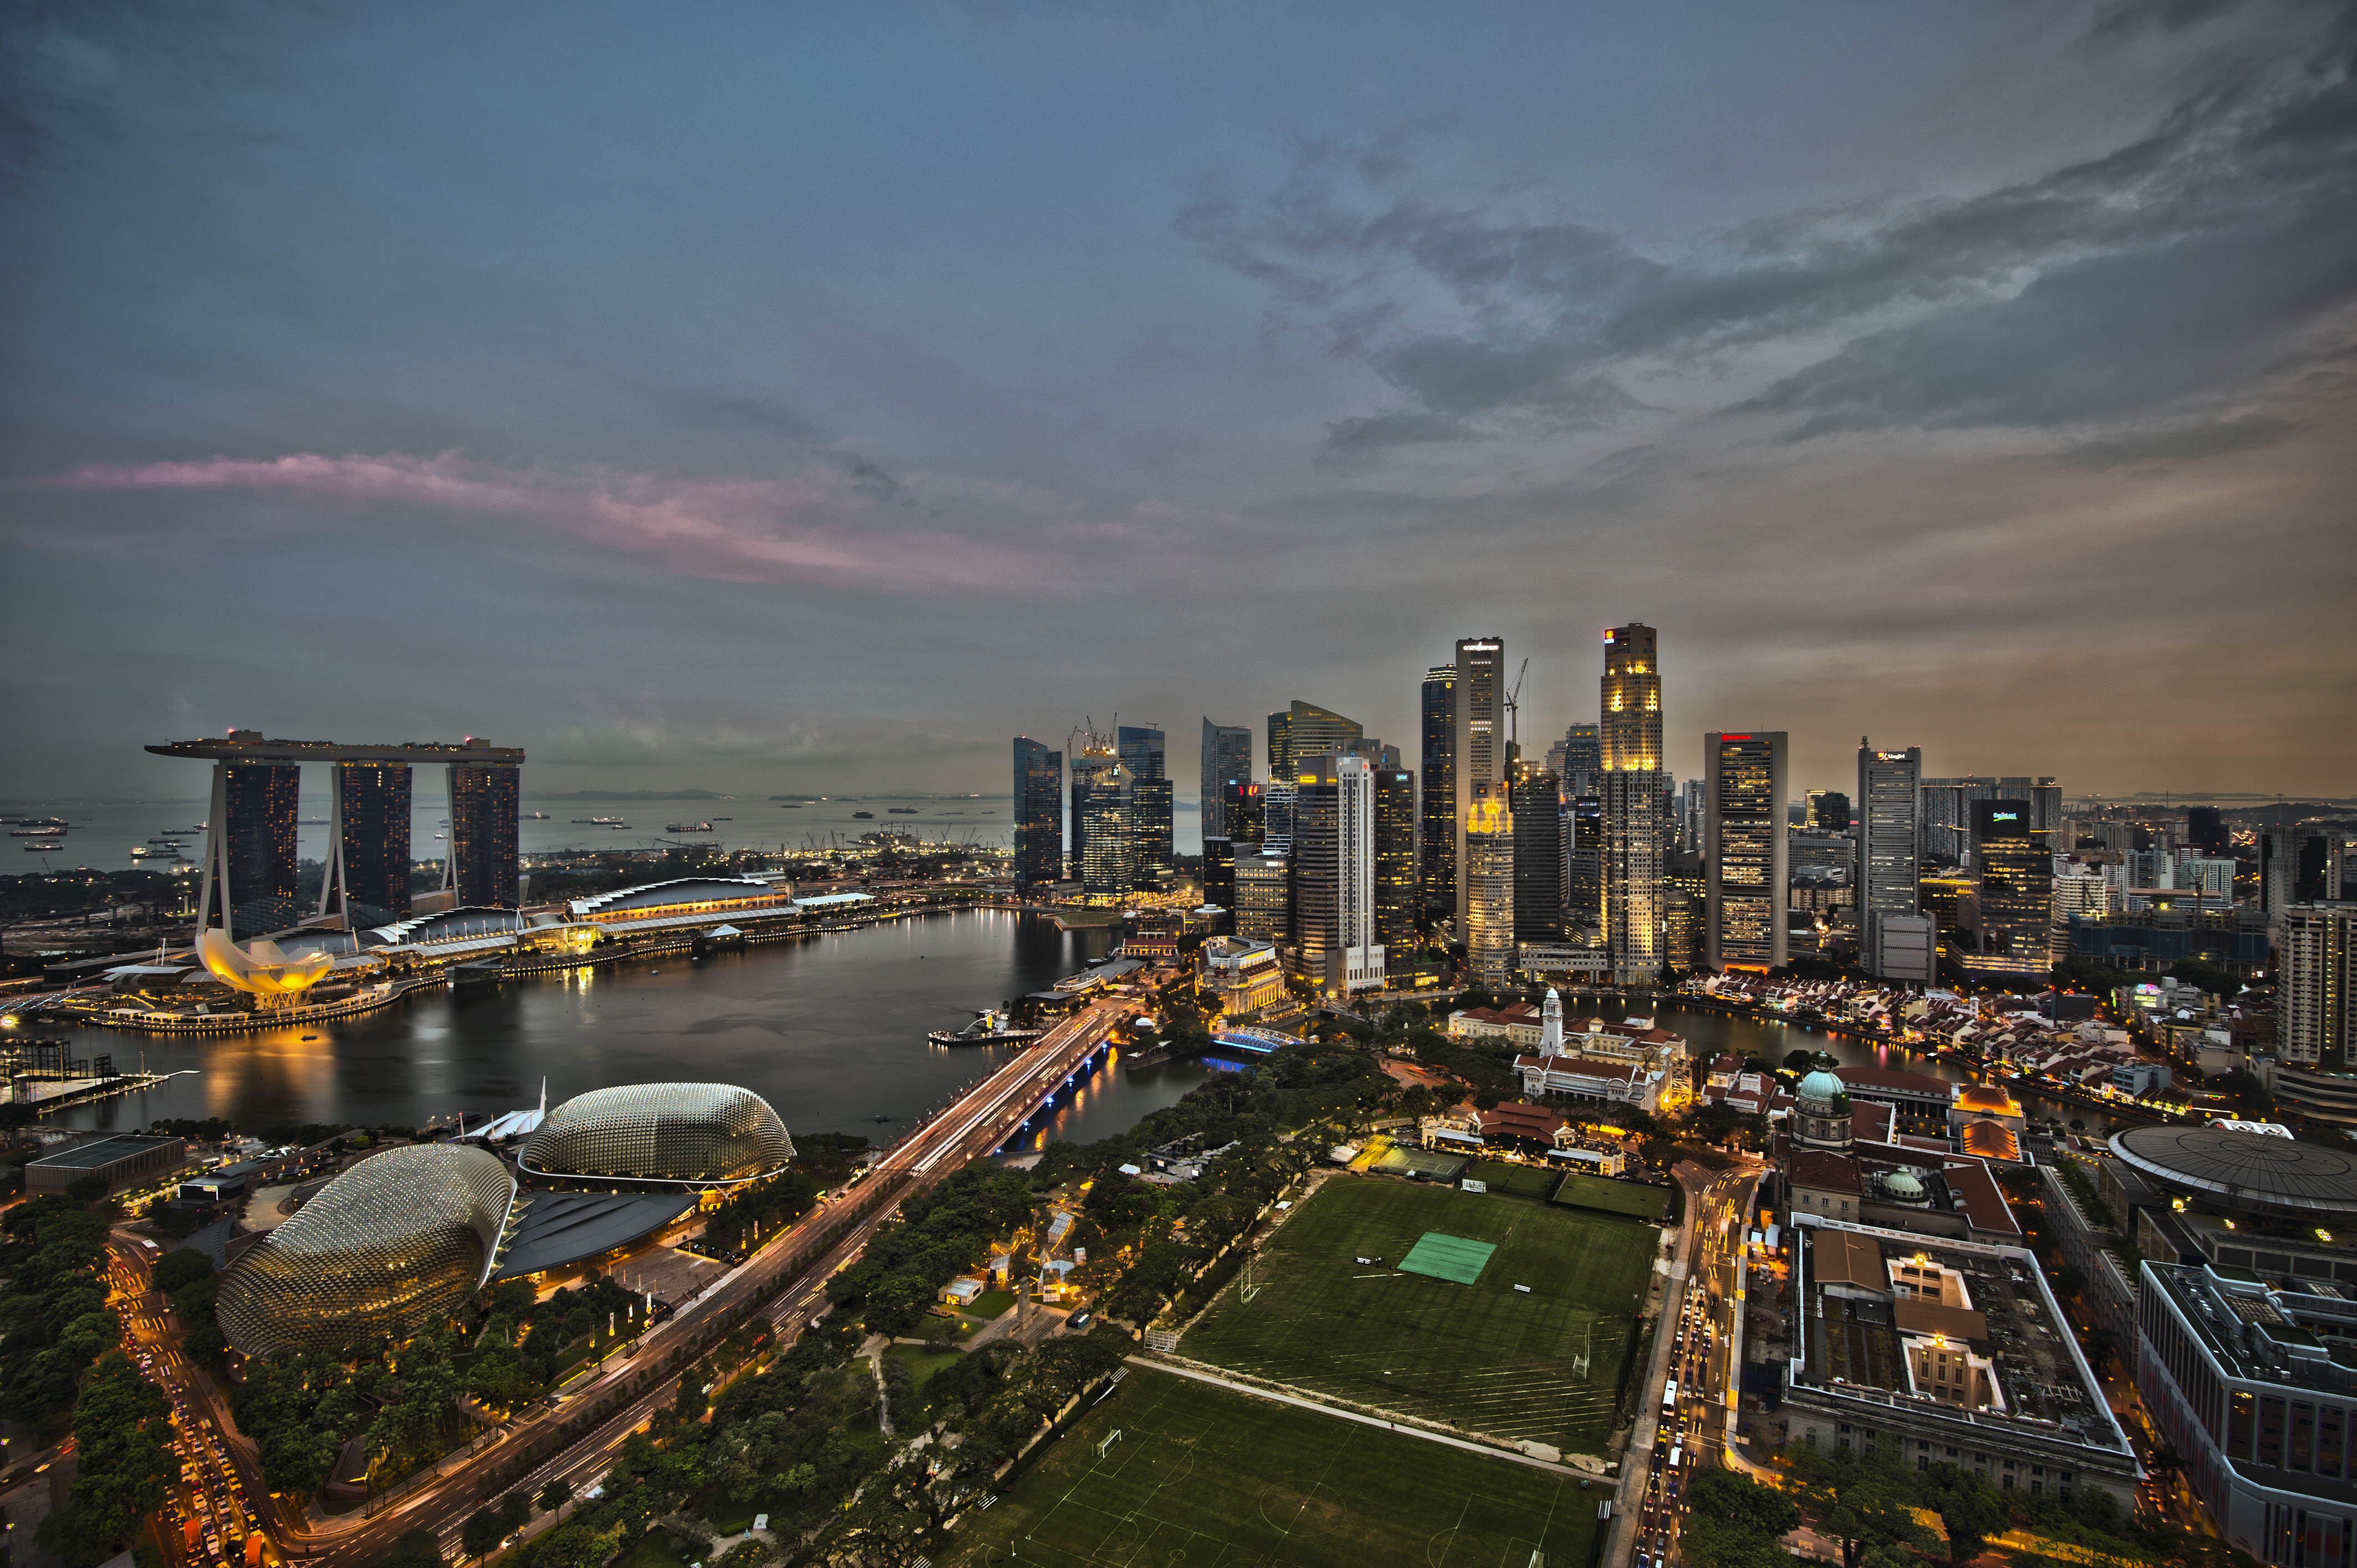 1_singapore_city_skyline_dusk_panorama_2011.jpg